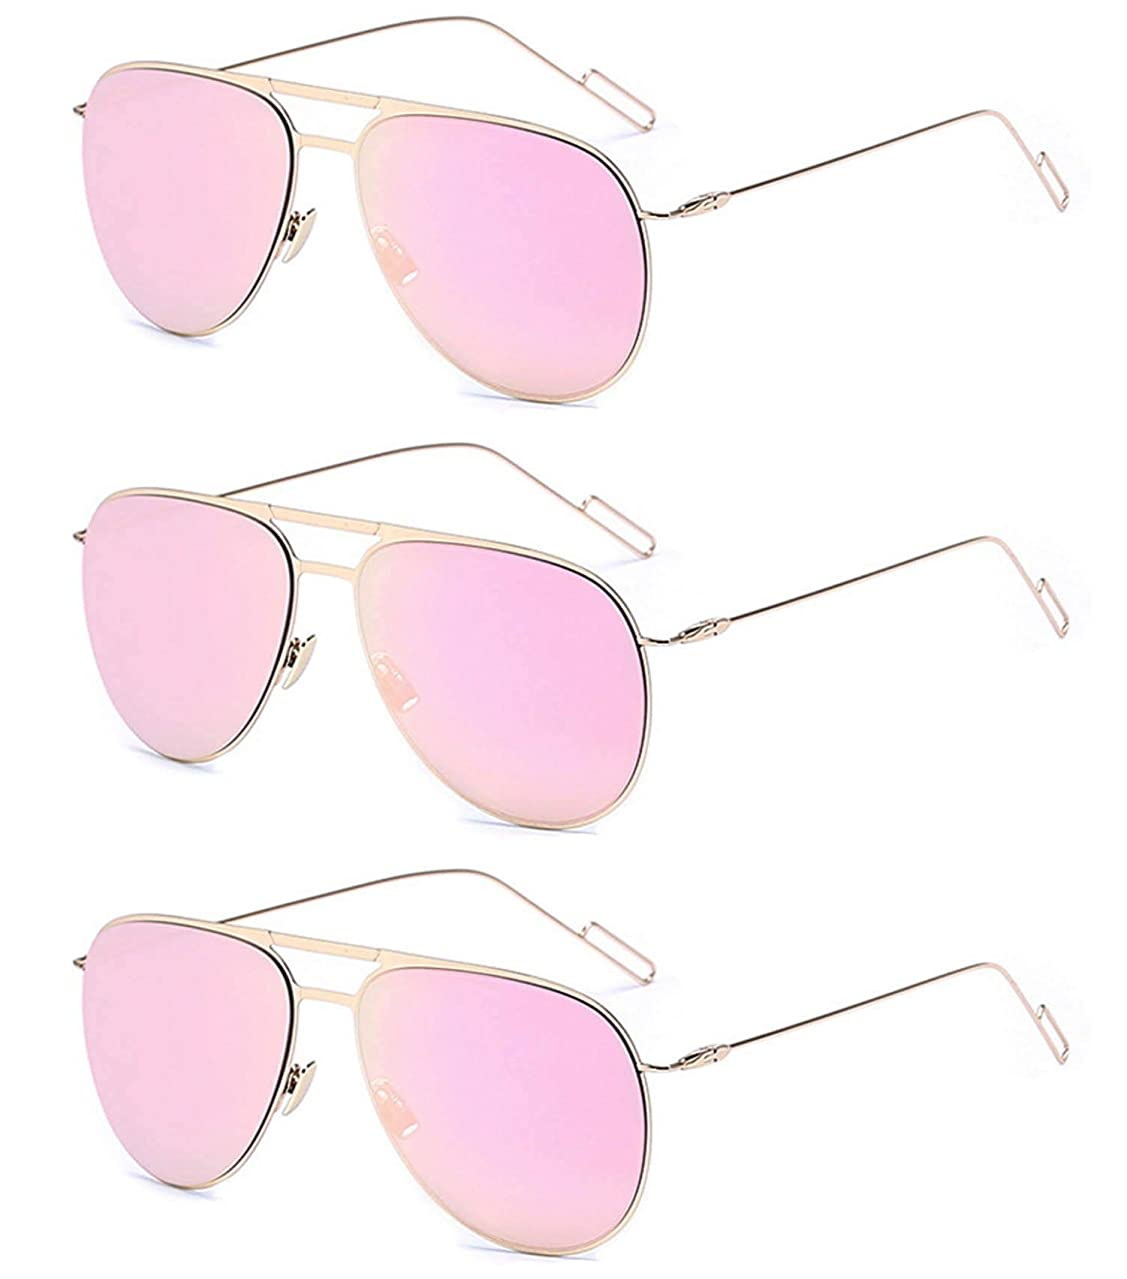 3 Pairs Classic Aviator Style Sunglasses Metal Frame Colored Lens